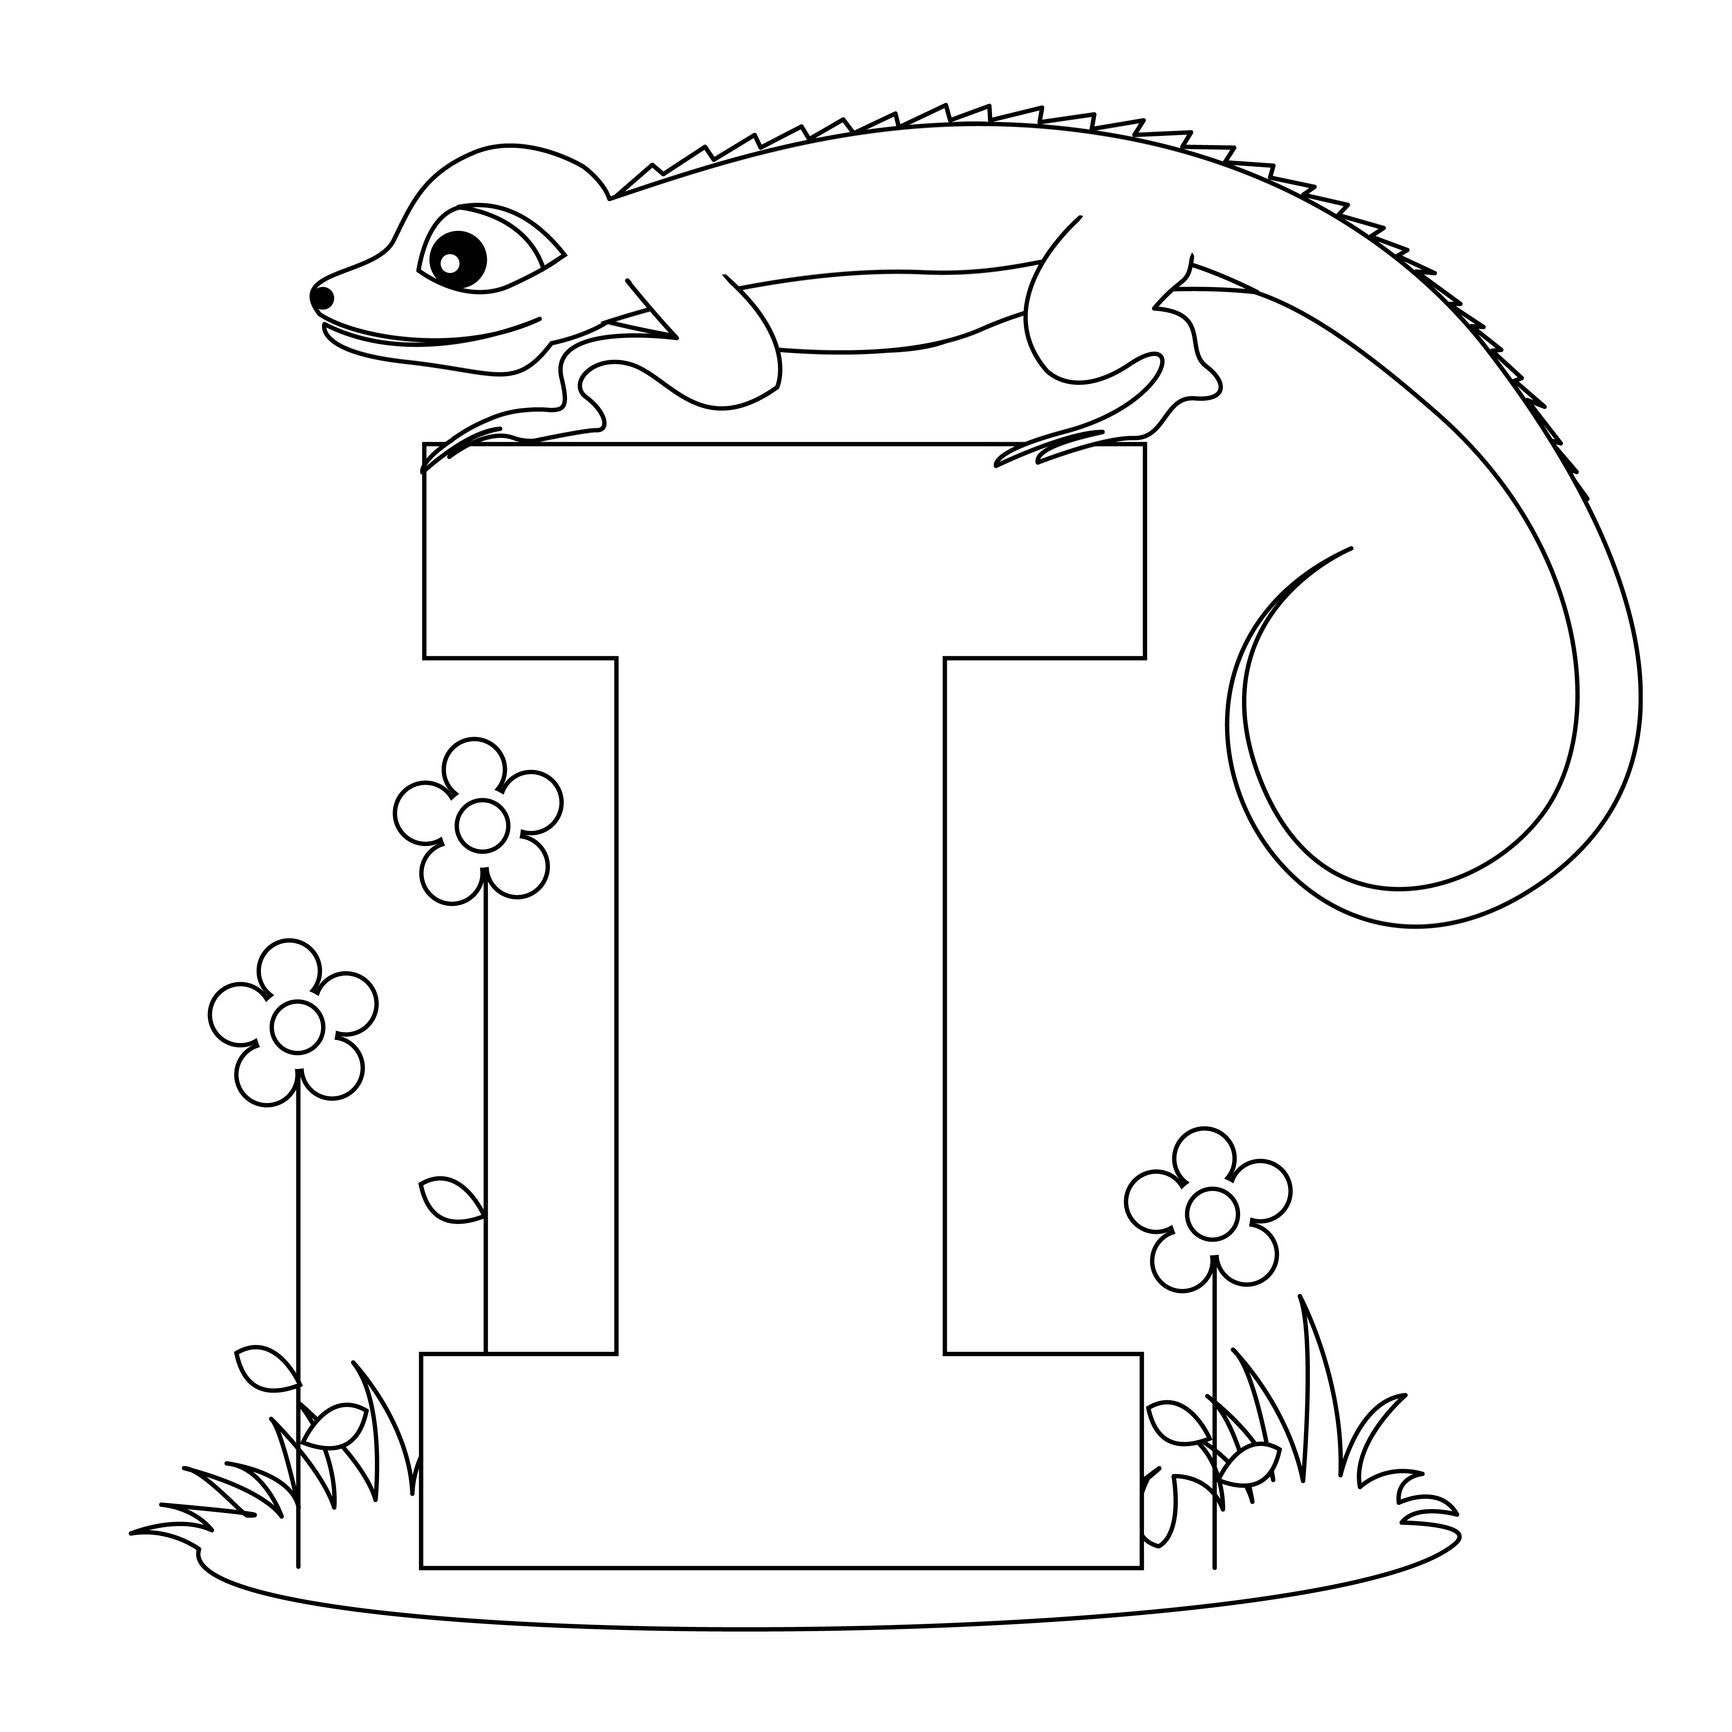 image detail for animal alphabet letter i coloring worksheet from kiboomu worksheets - I Colouring Pages